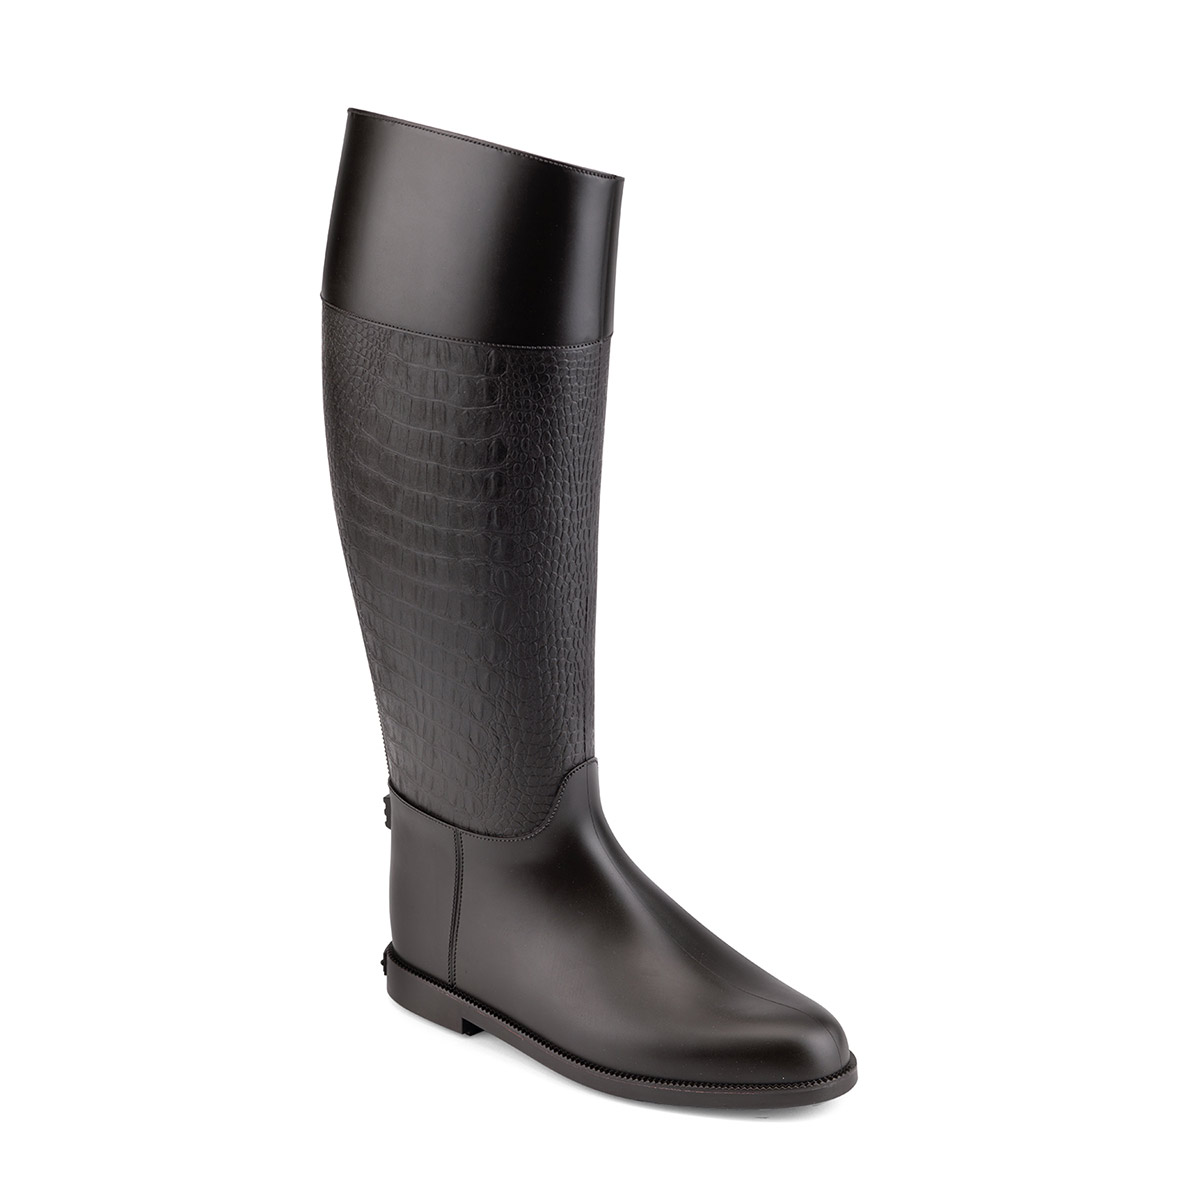 Riding boot with crocodile printing